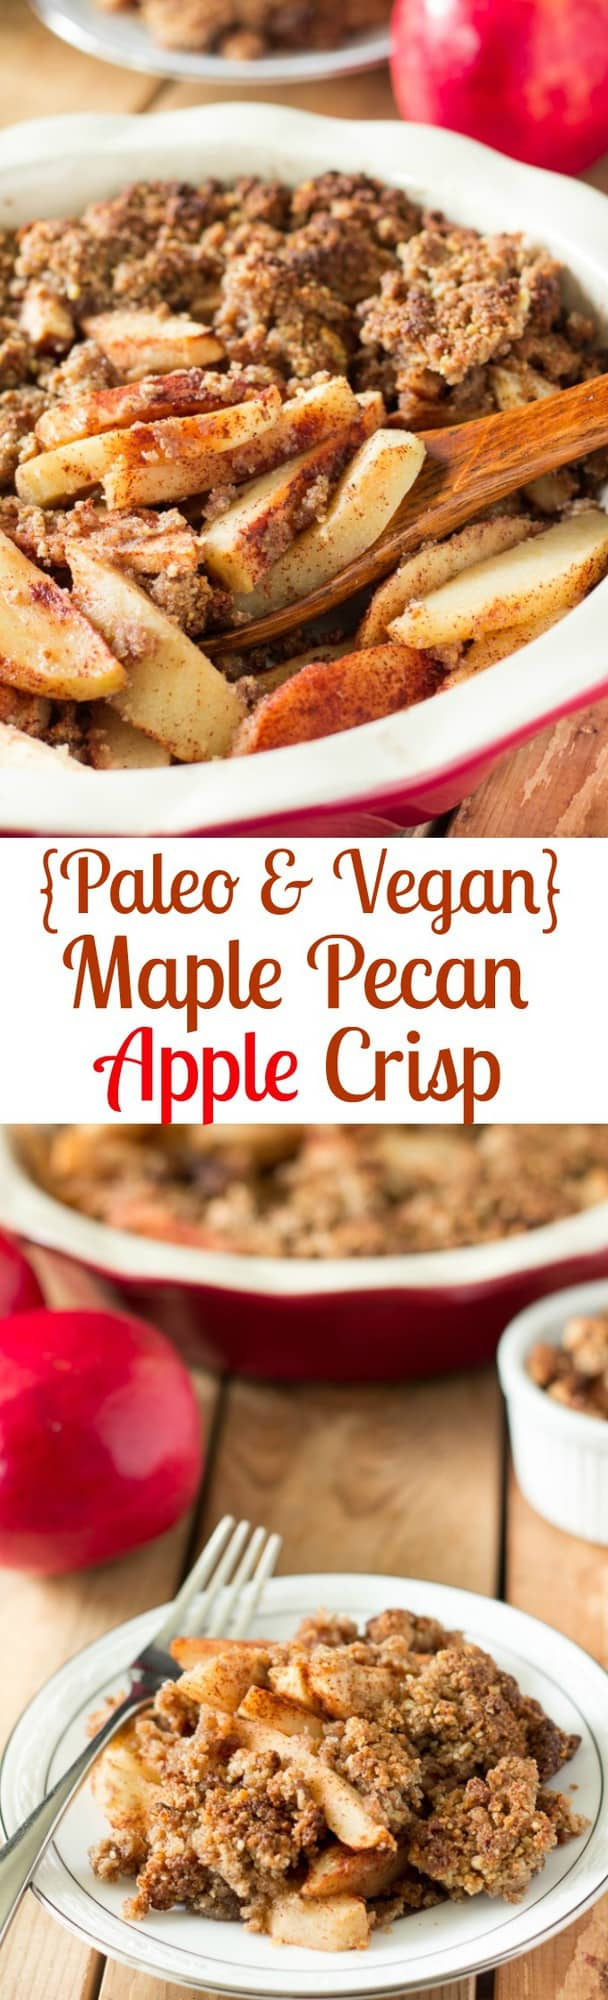 Paleo & Vegan Maple Pecan Apple Crisp